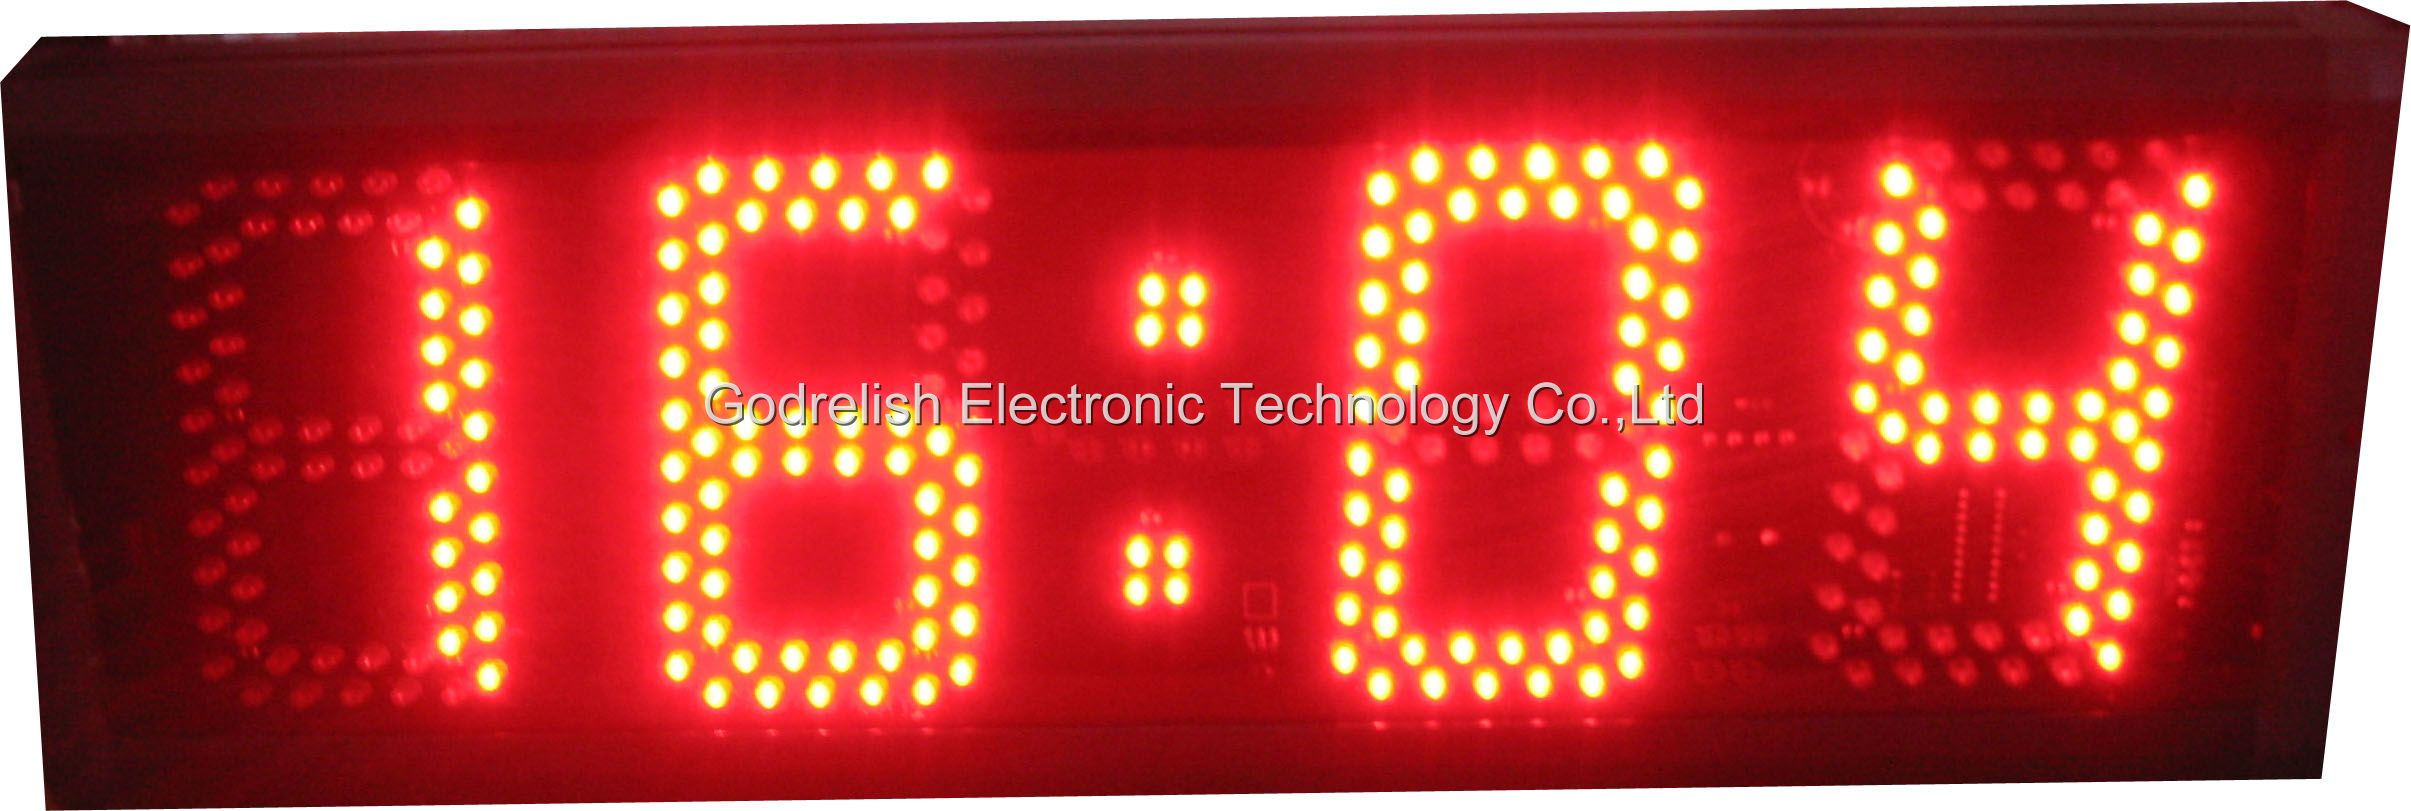 Digital Clock Circuit Diagram Gc504 Led